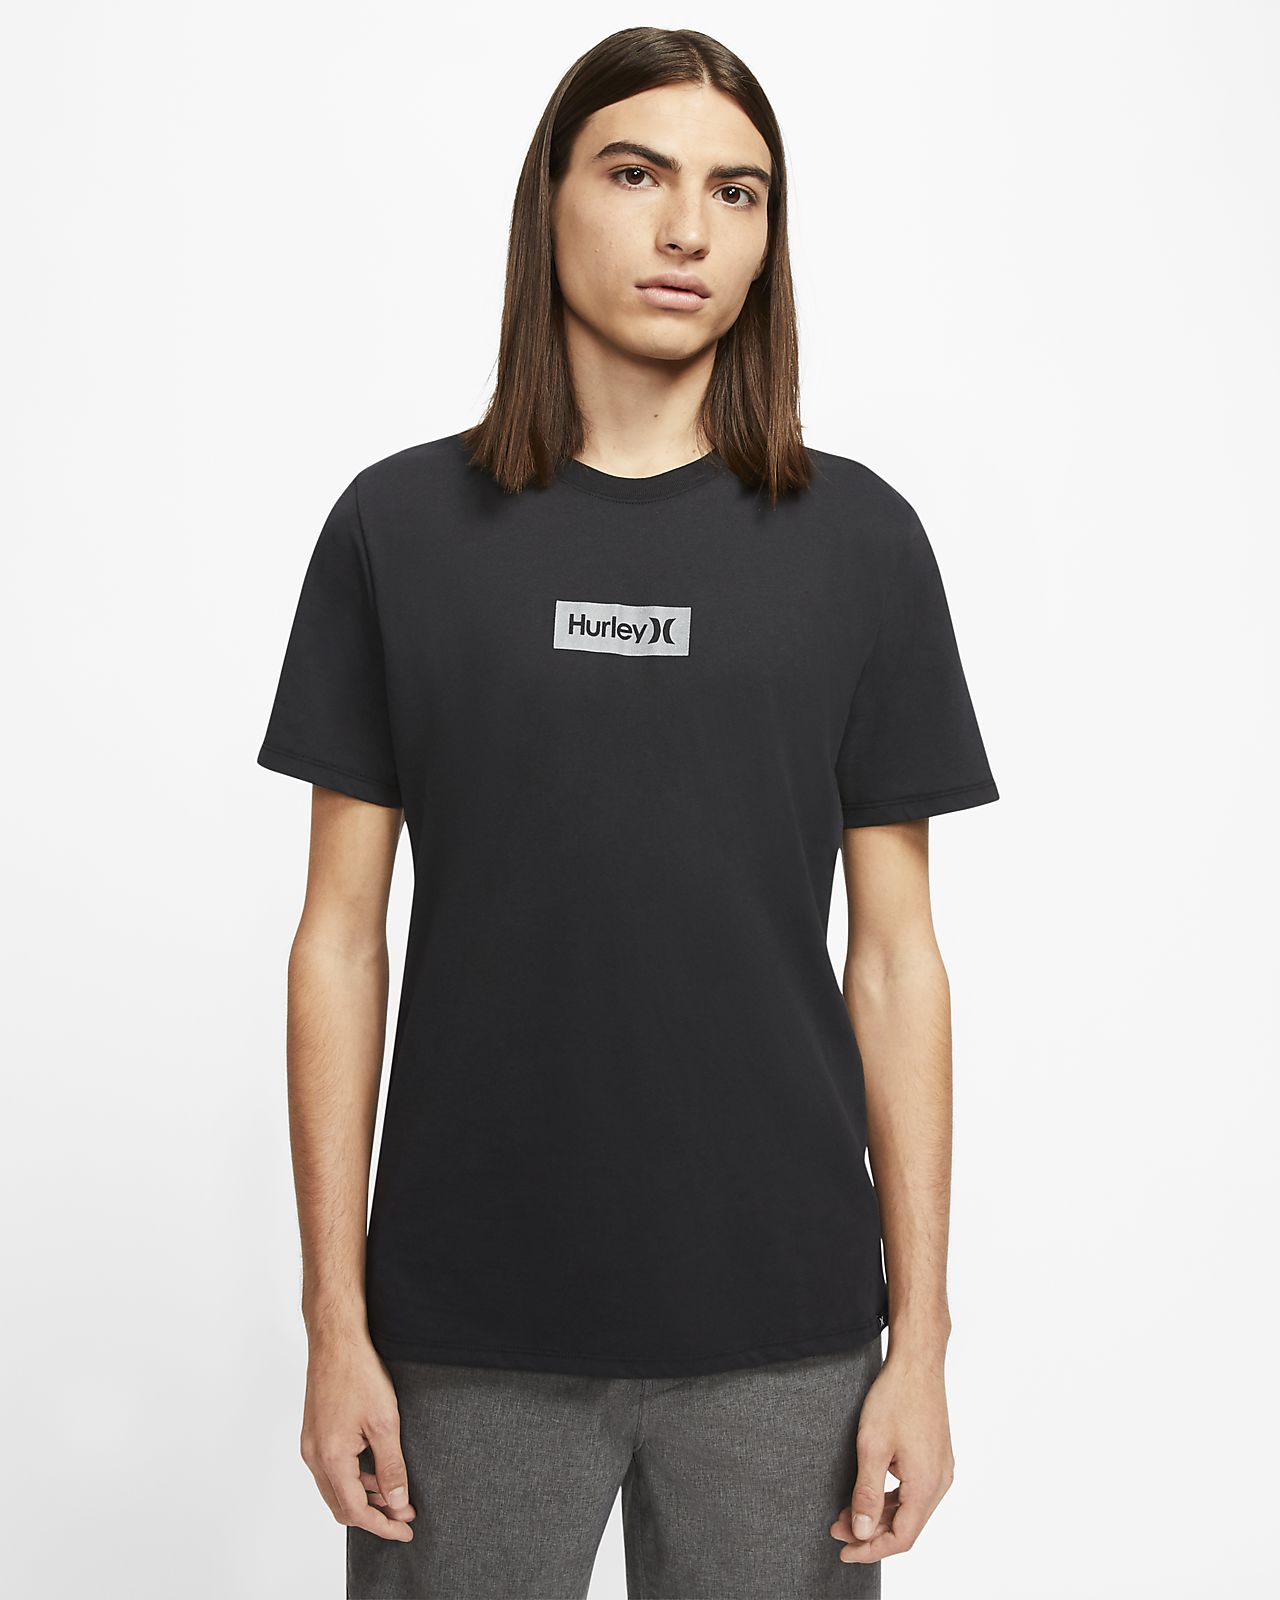 Tee-shirt Hurley Dri-FIT One And Only Small Box Reflective pour Homme